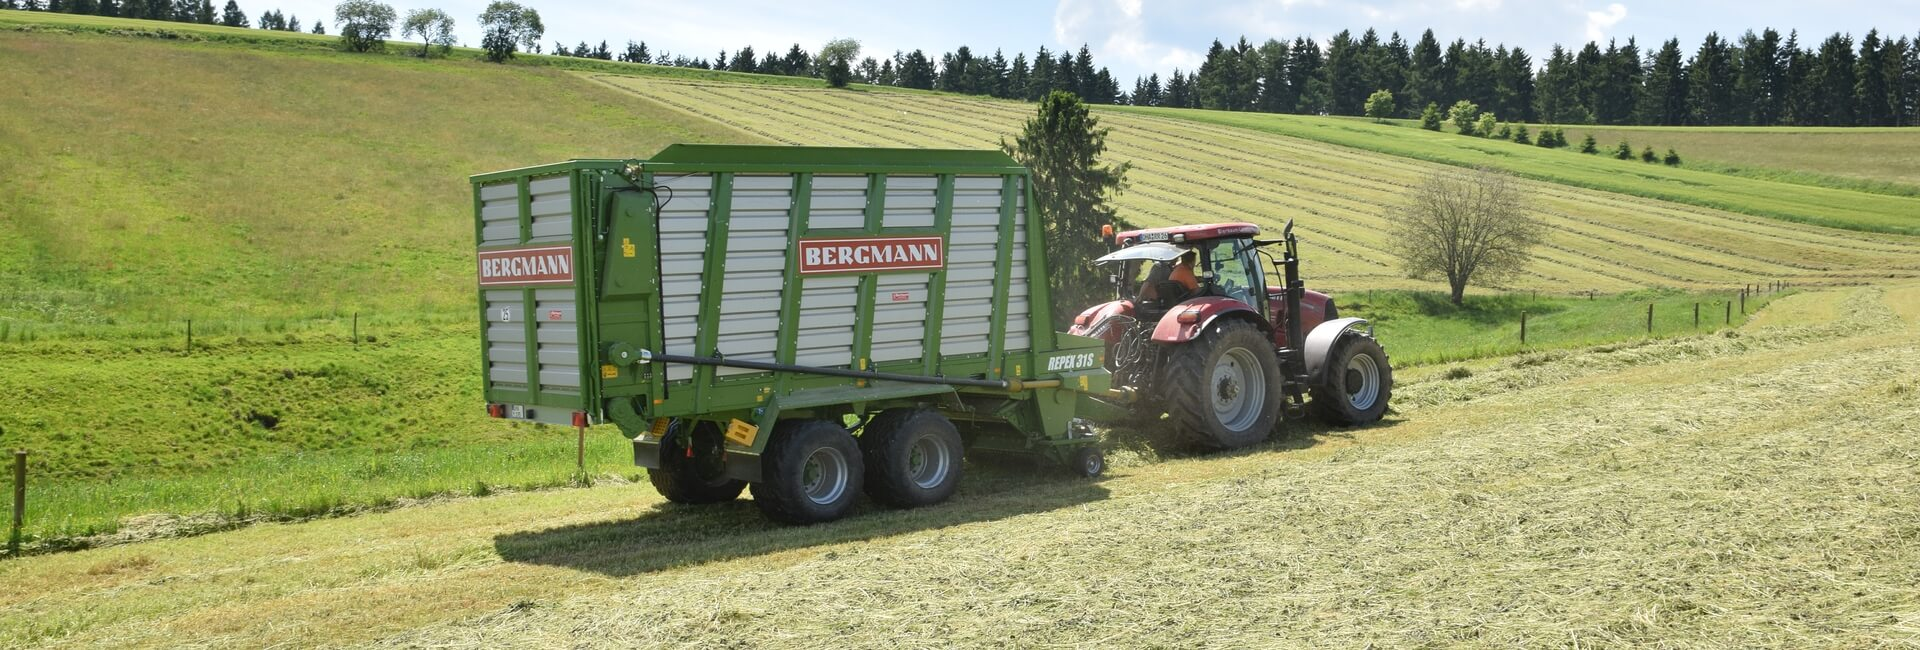 Silage wagons